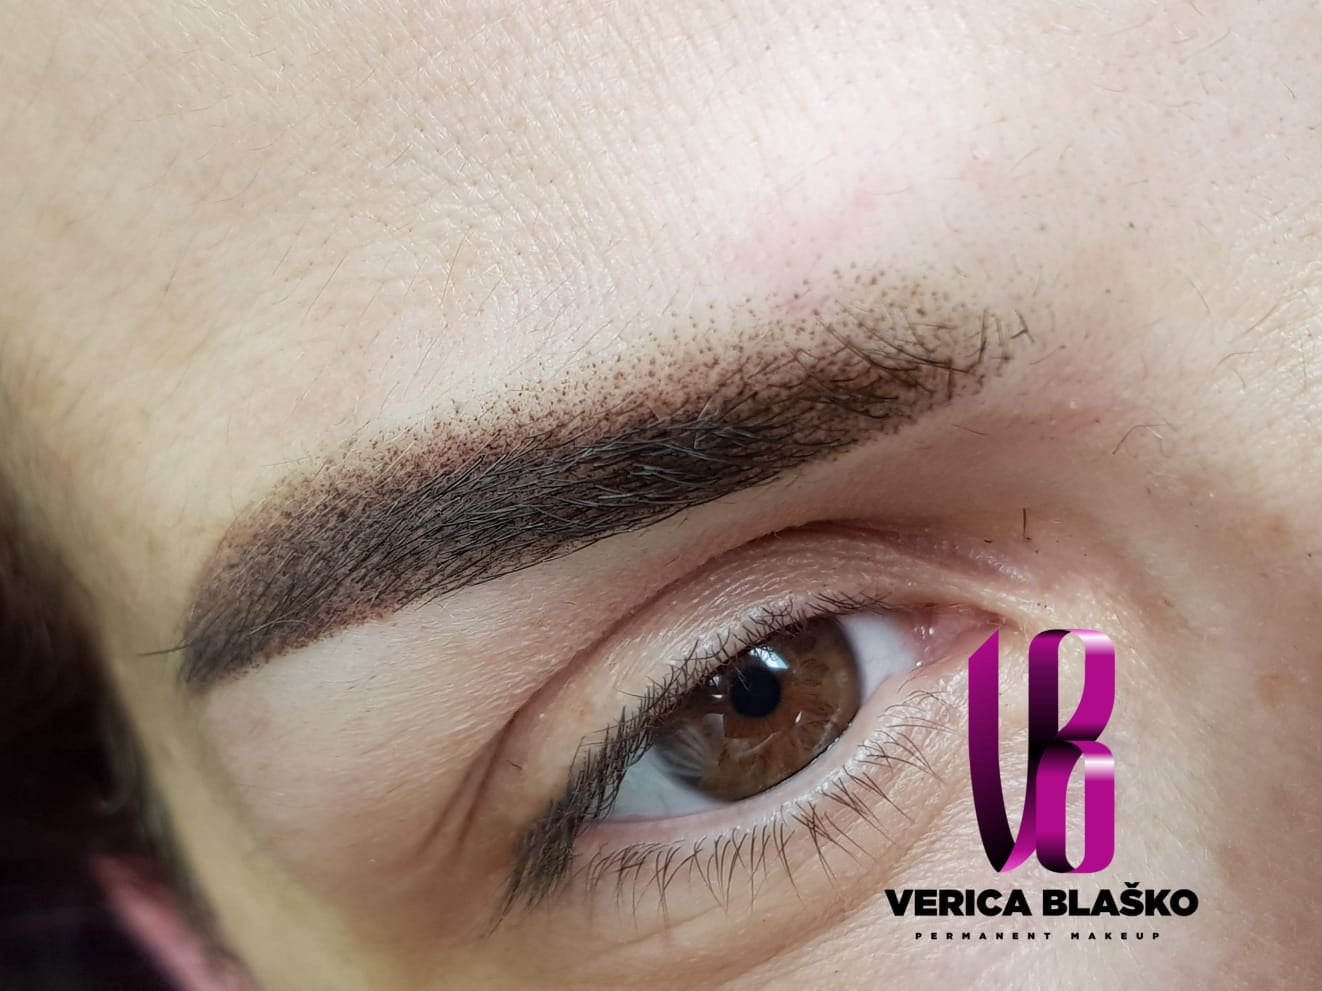 Verica Blasko Powder Brows Workshop November 11-12